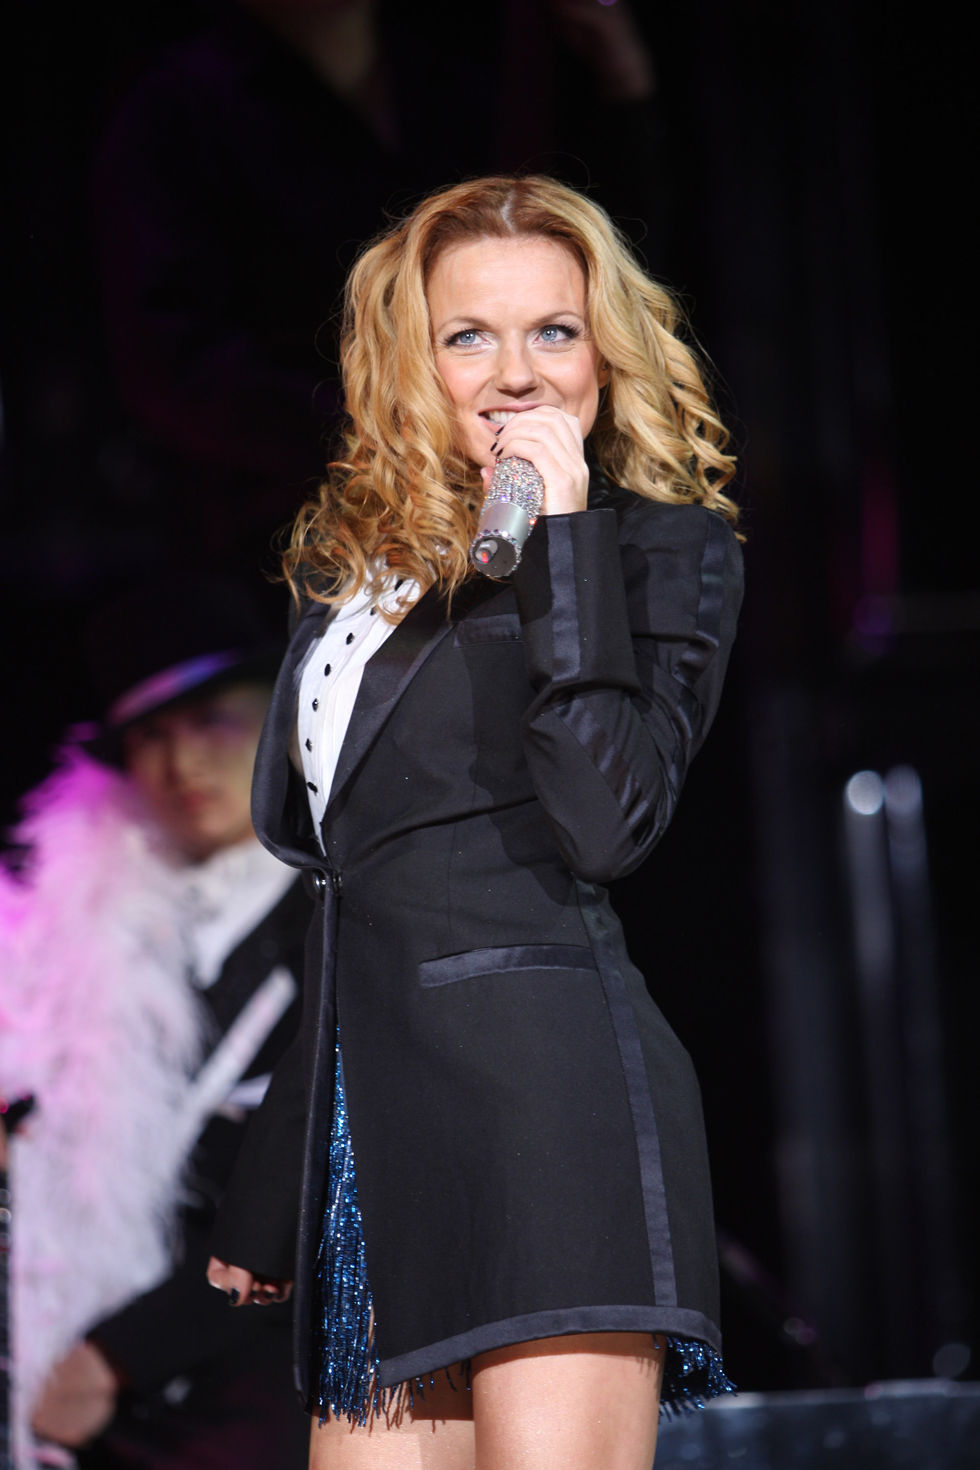 spice-girls-perform-on-stage-at-madison-square-gardens-in-new-york-city-26